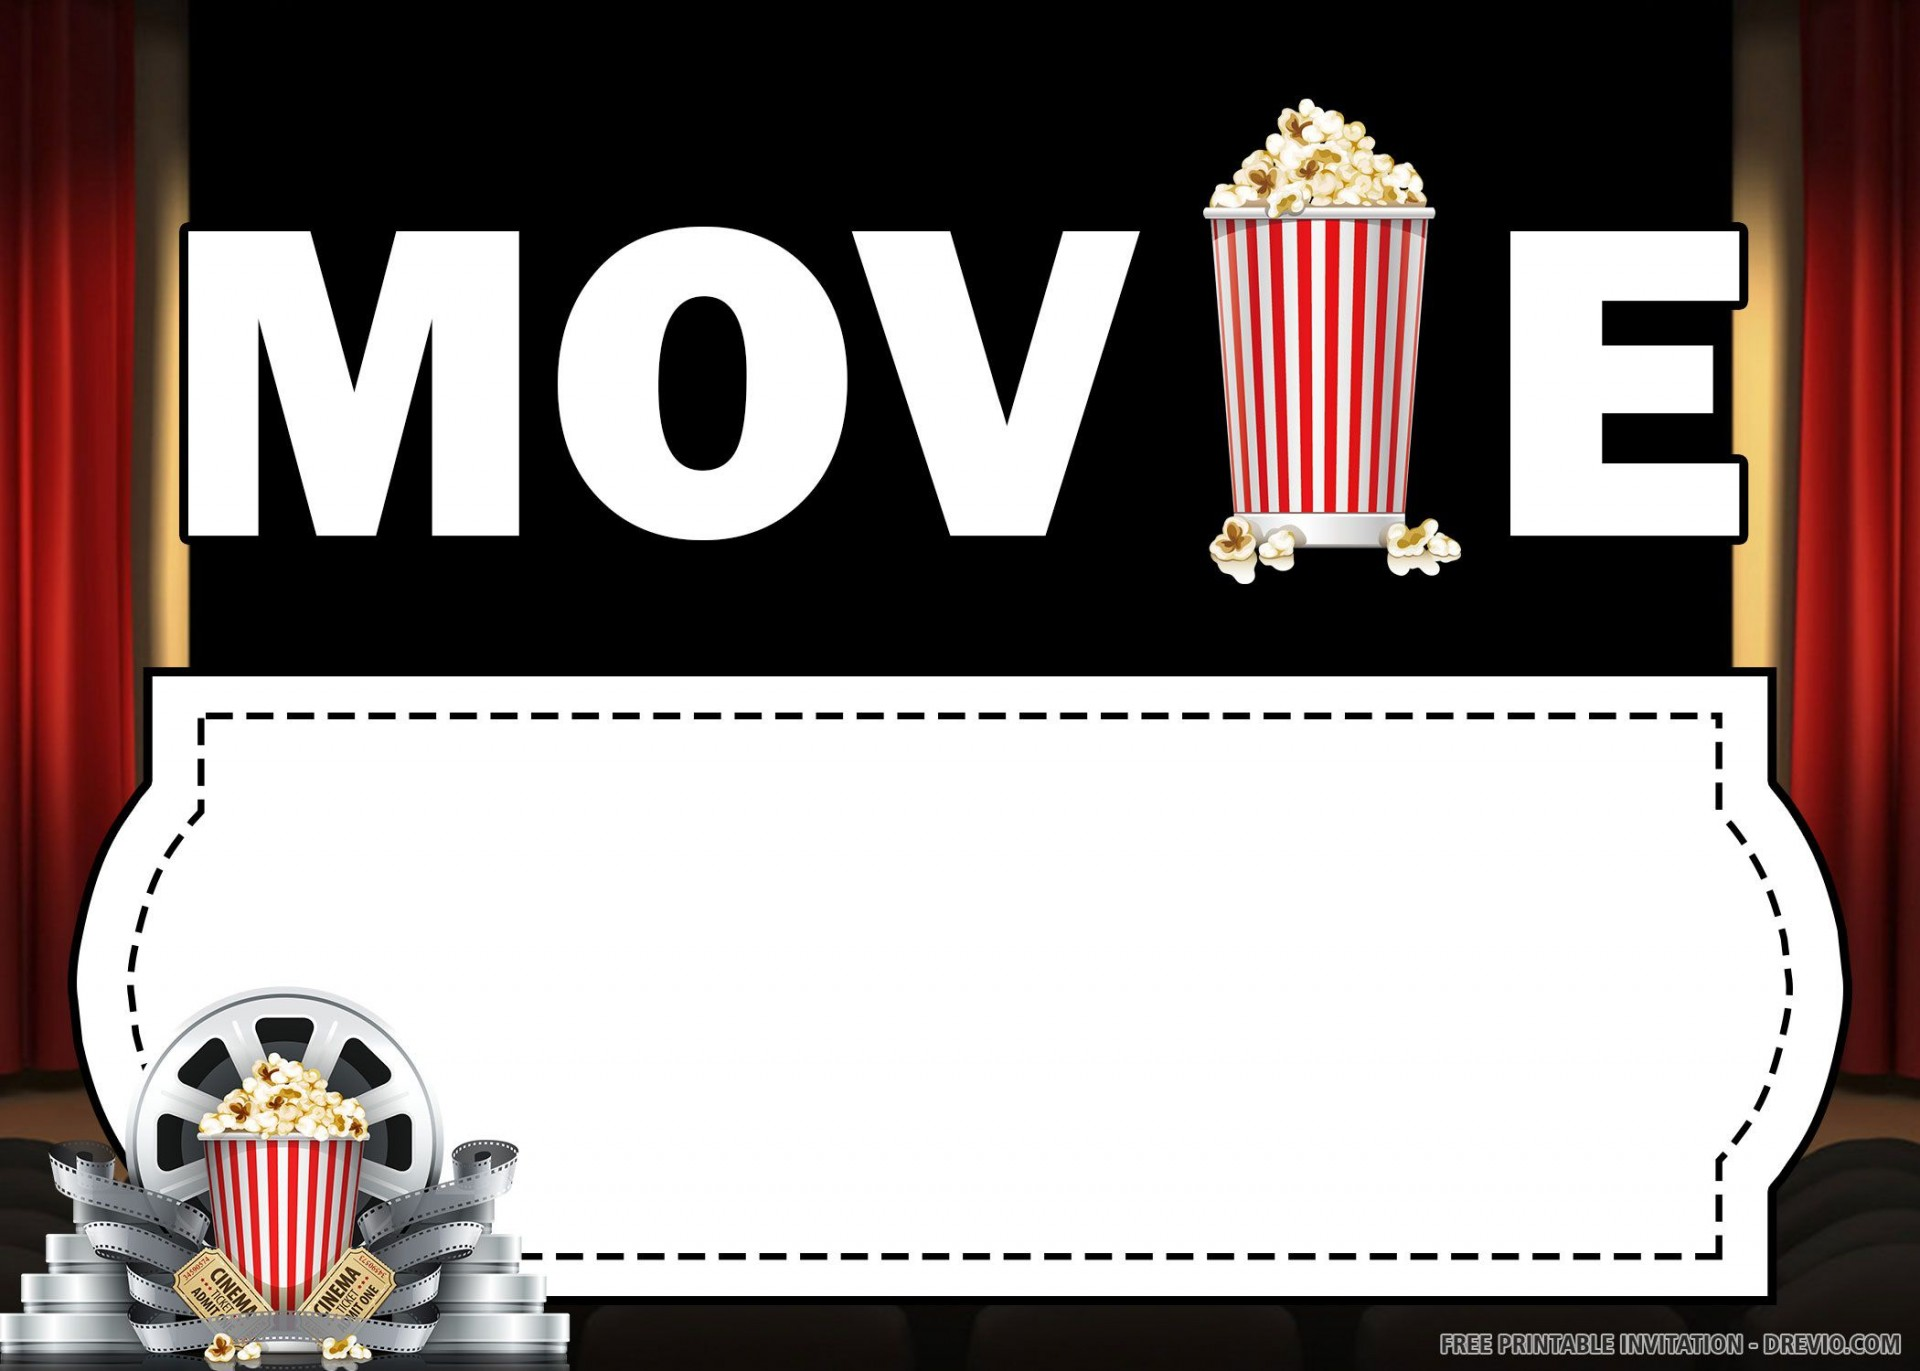 004 Awesome Movie Ticket Invitation Template Design  Blank Free Download Editable Printable1920